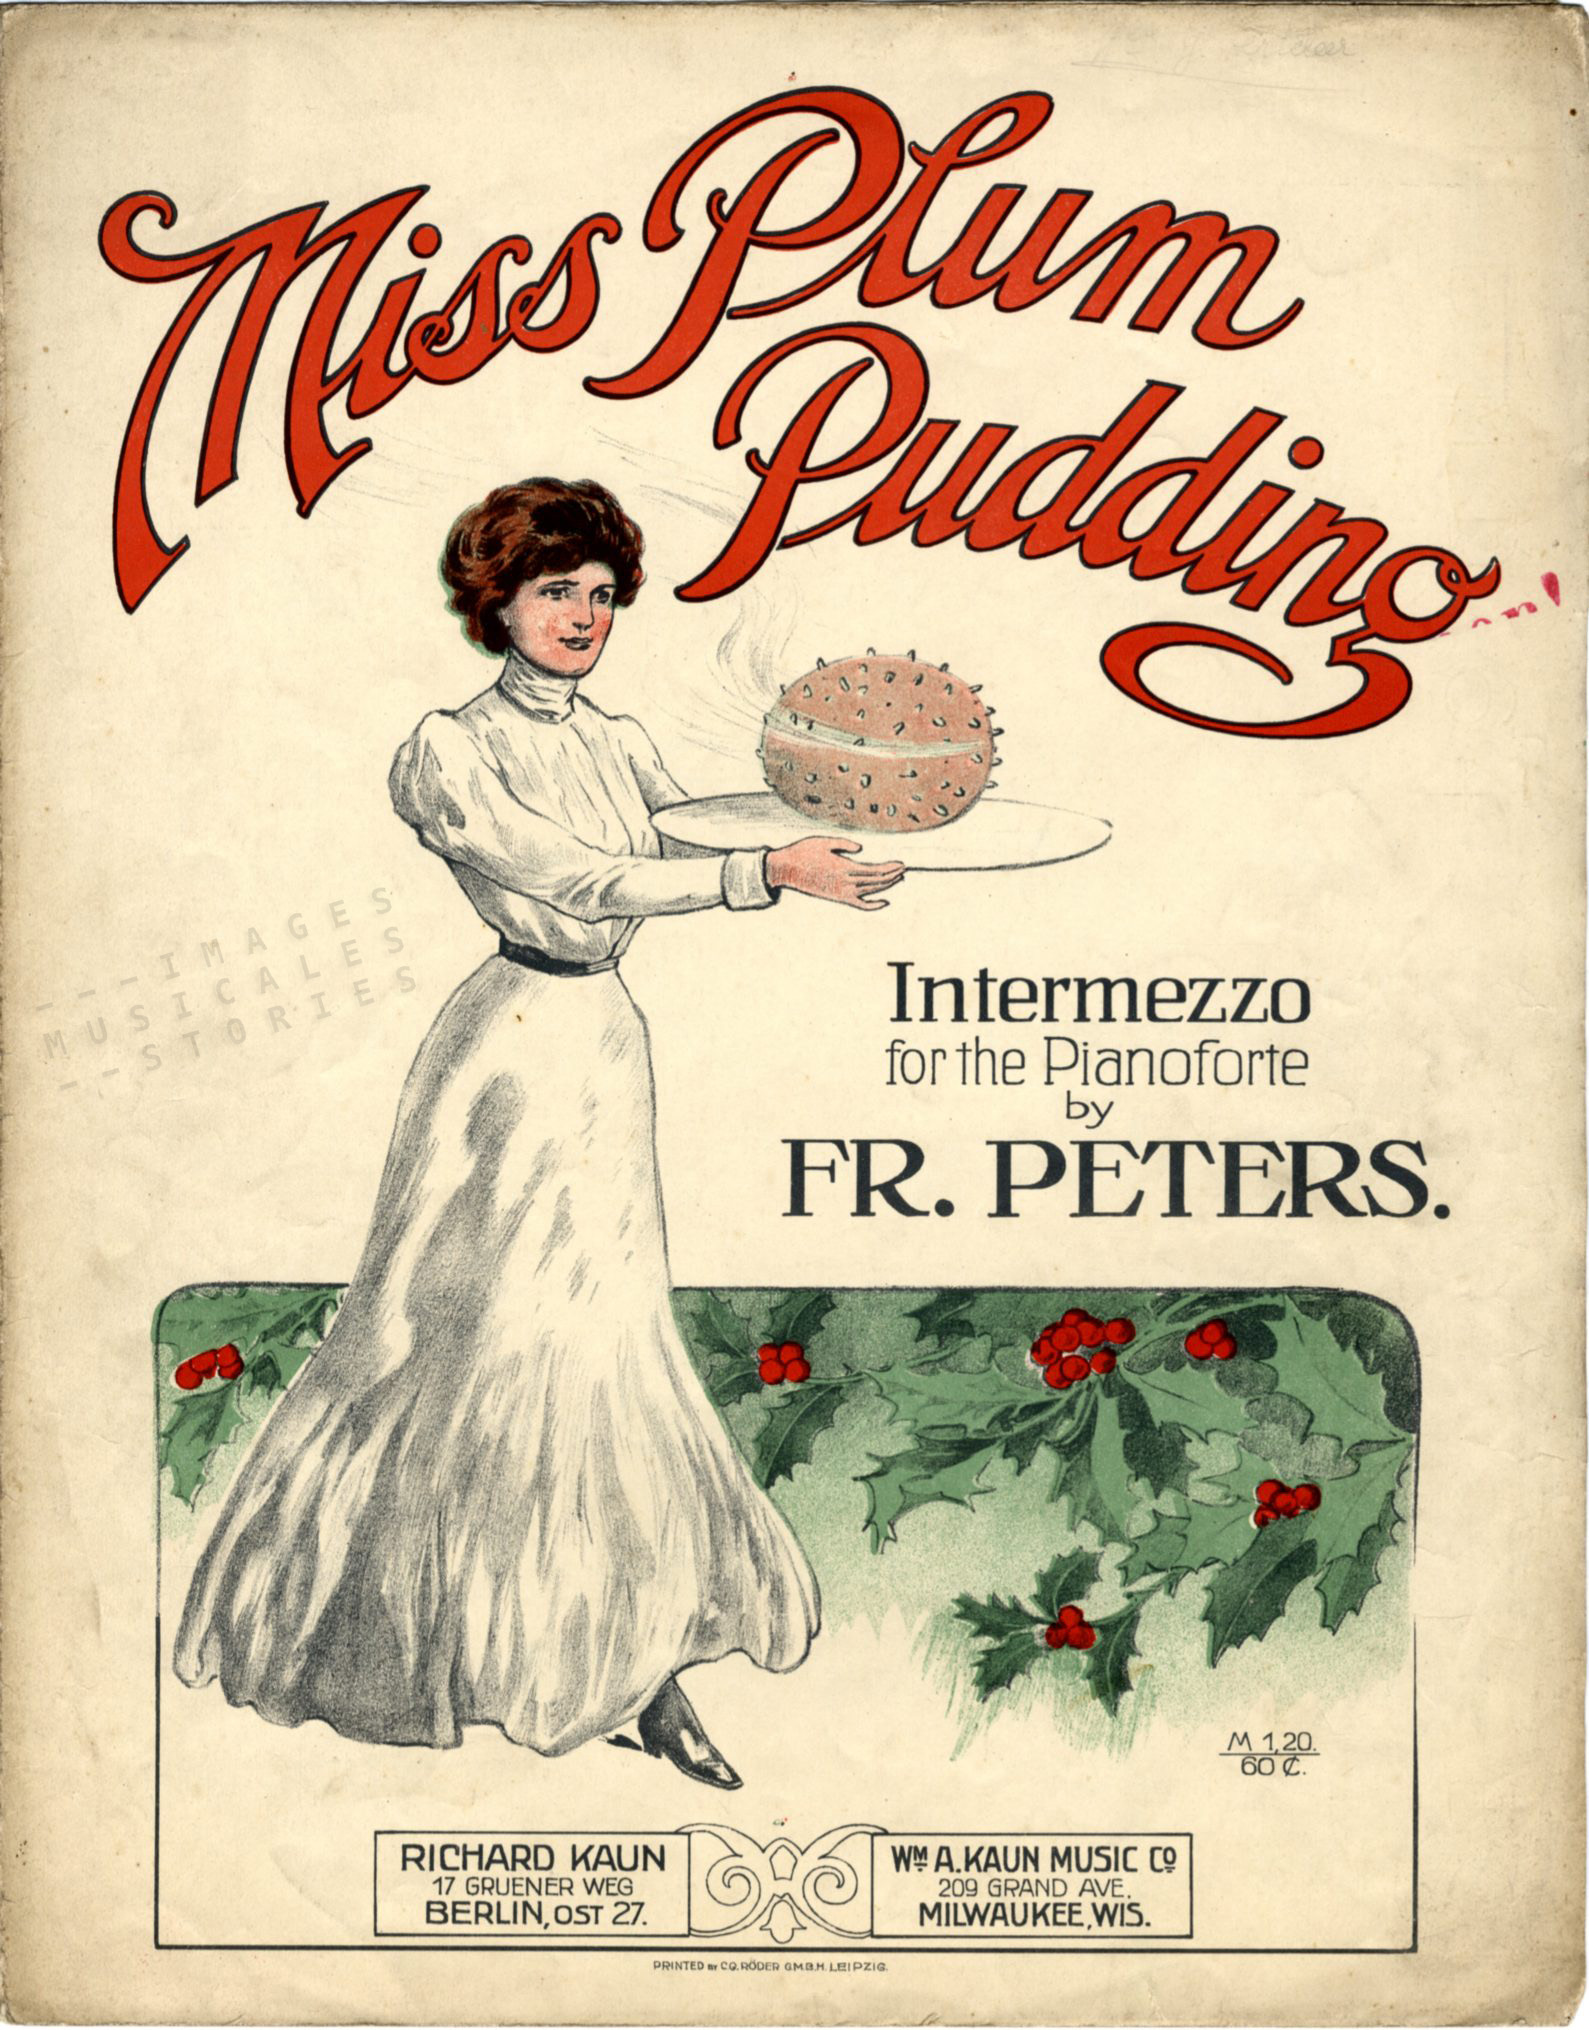 'Miss Plum Pudding' piano intermezzo by Fr. Peters